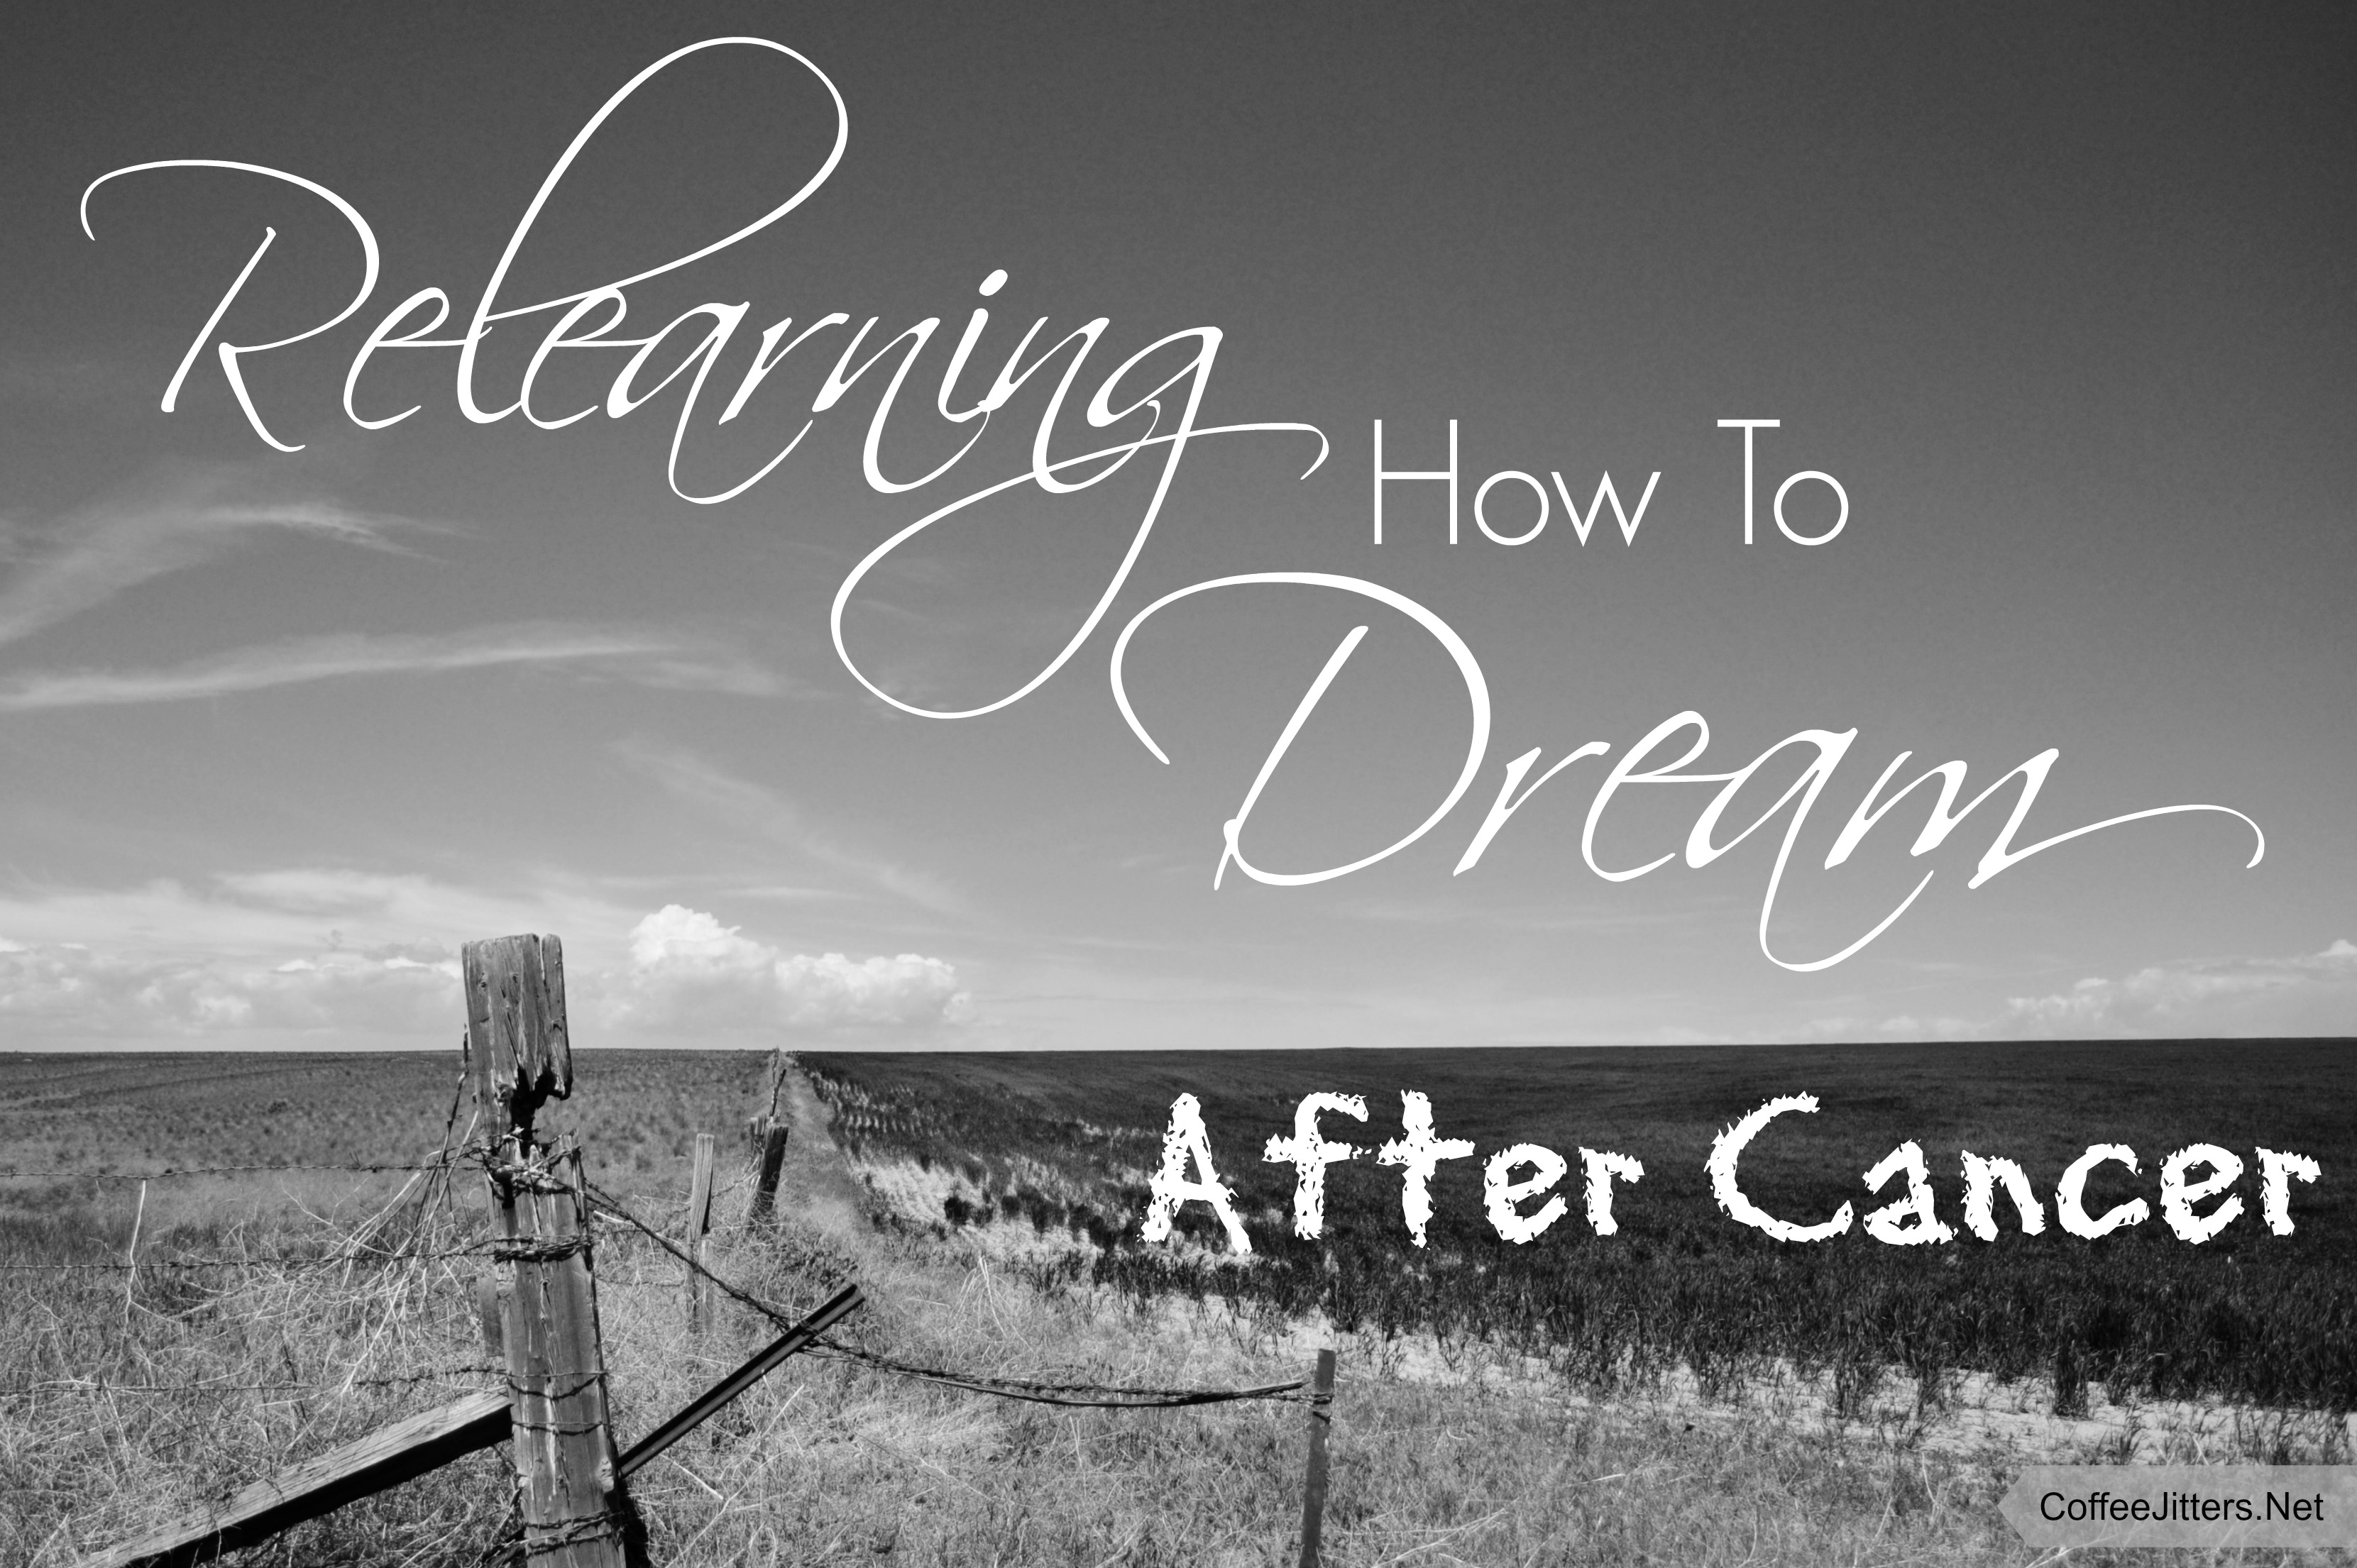 relearning-how-to-dream-after-cancer | CoffeeJitters.Net | by Judy Schwartz Haley